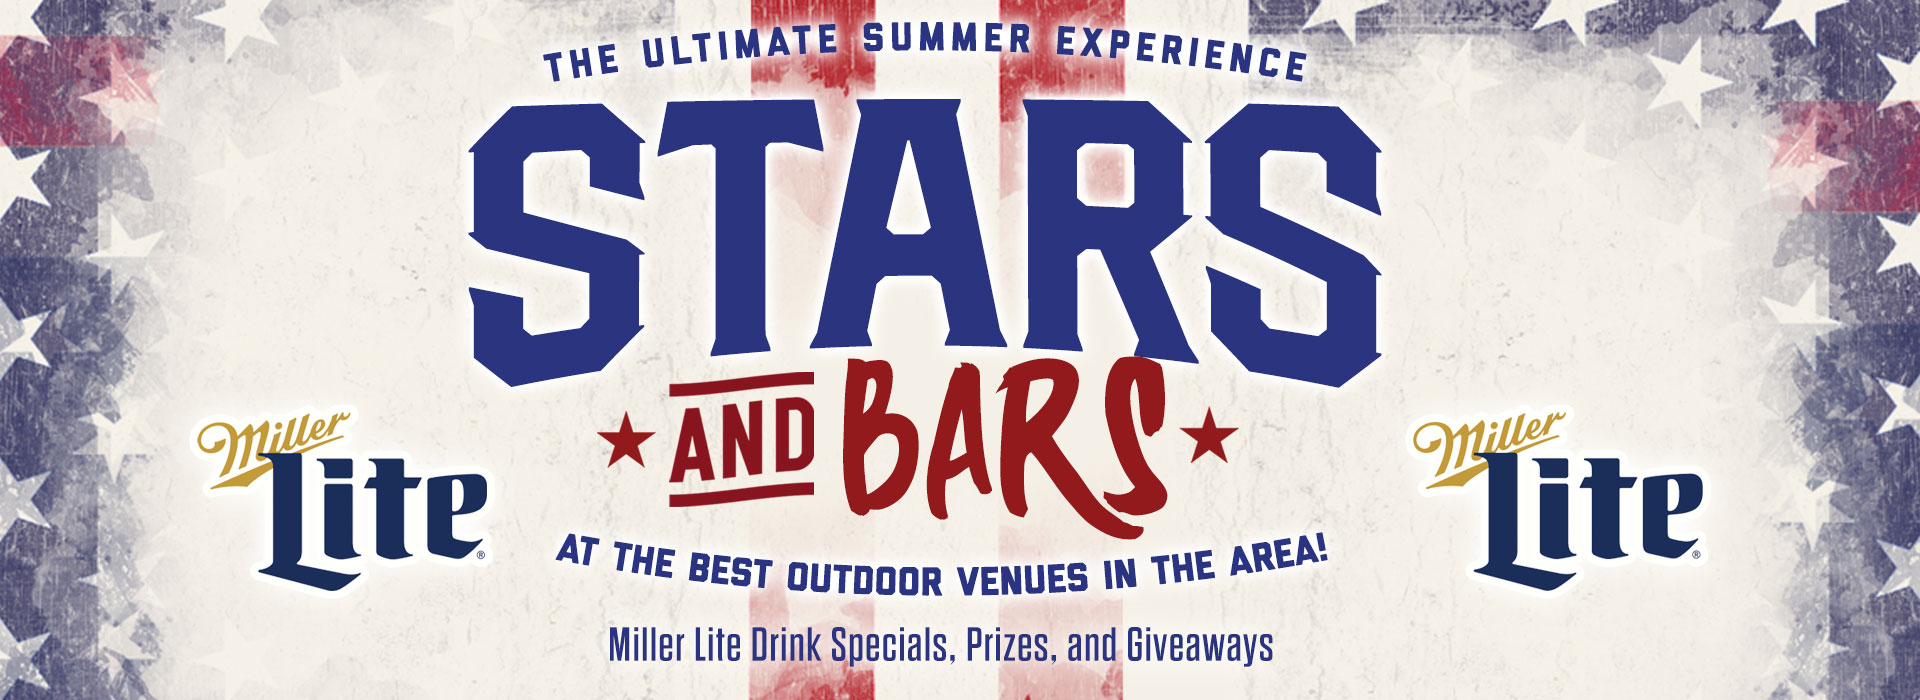 Best Outdoor Venues in Philadelphia - Miller Lite